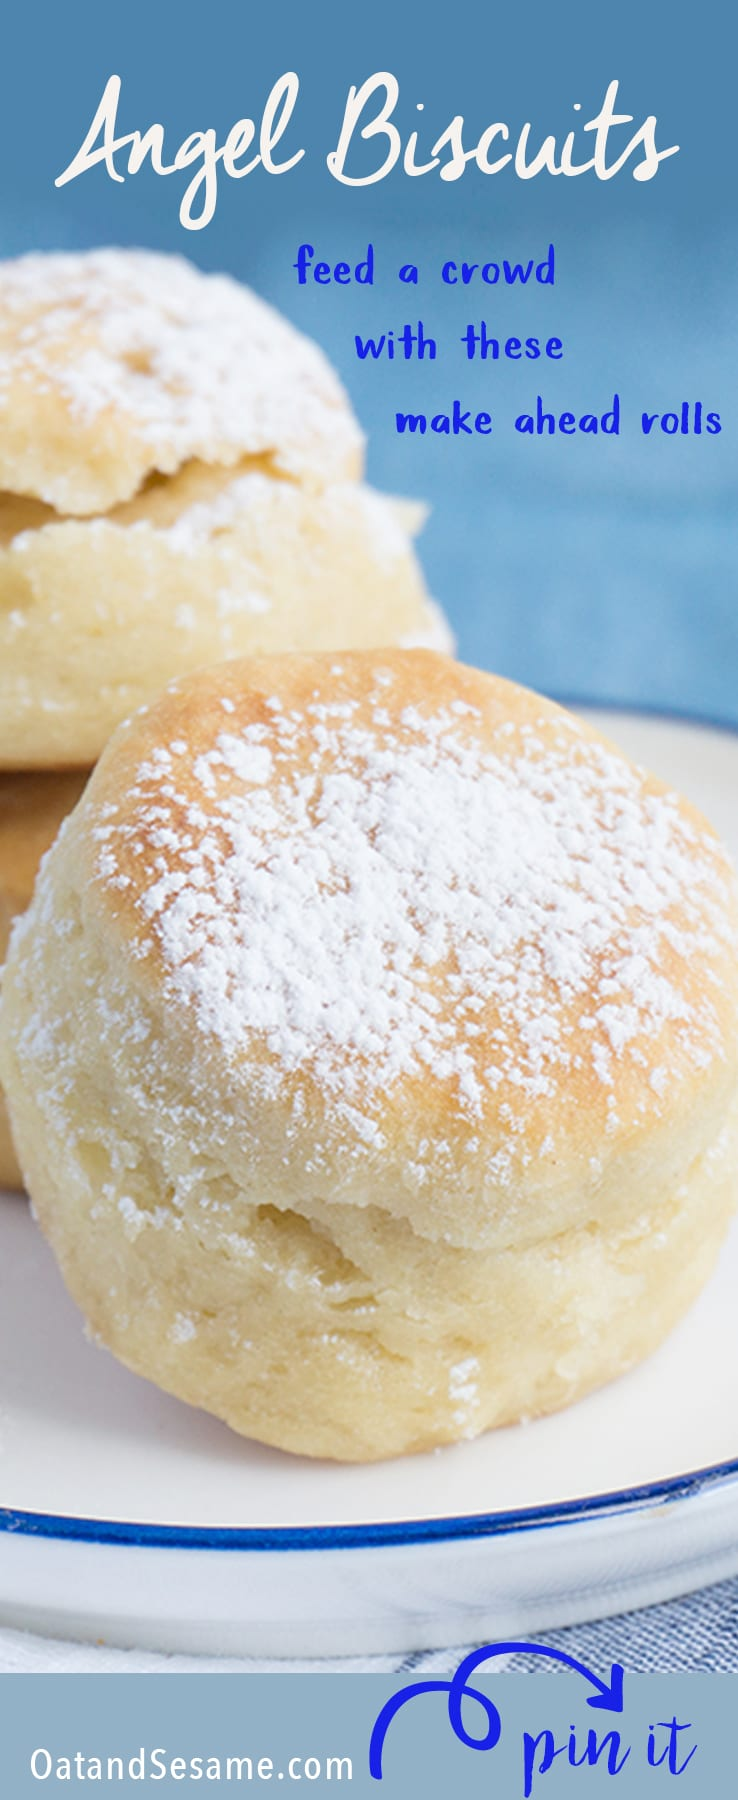 The easiest, fool-proof homemade yeast rolls ever! Make a million little Angel Biscuits and you'll be the hero at any table! | Recipe at OatandSesame.com